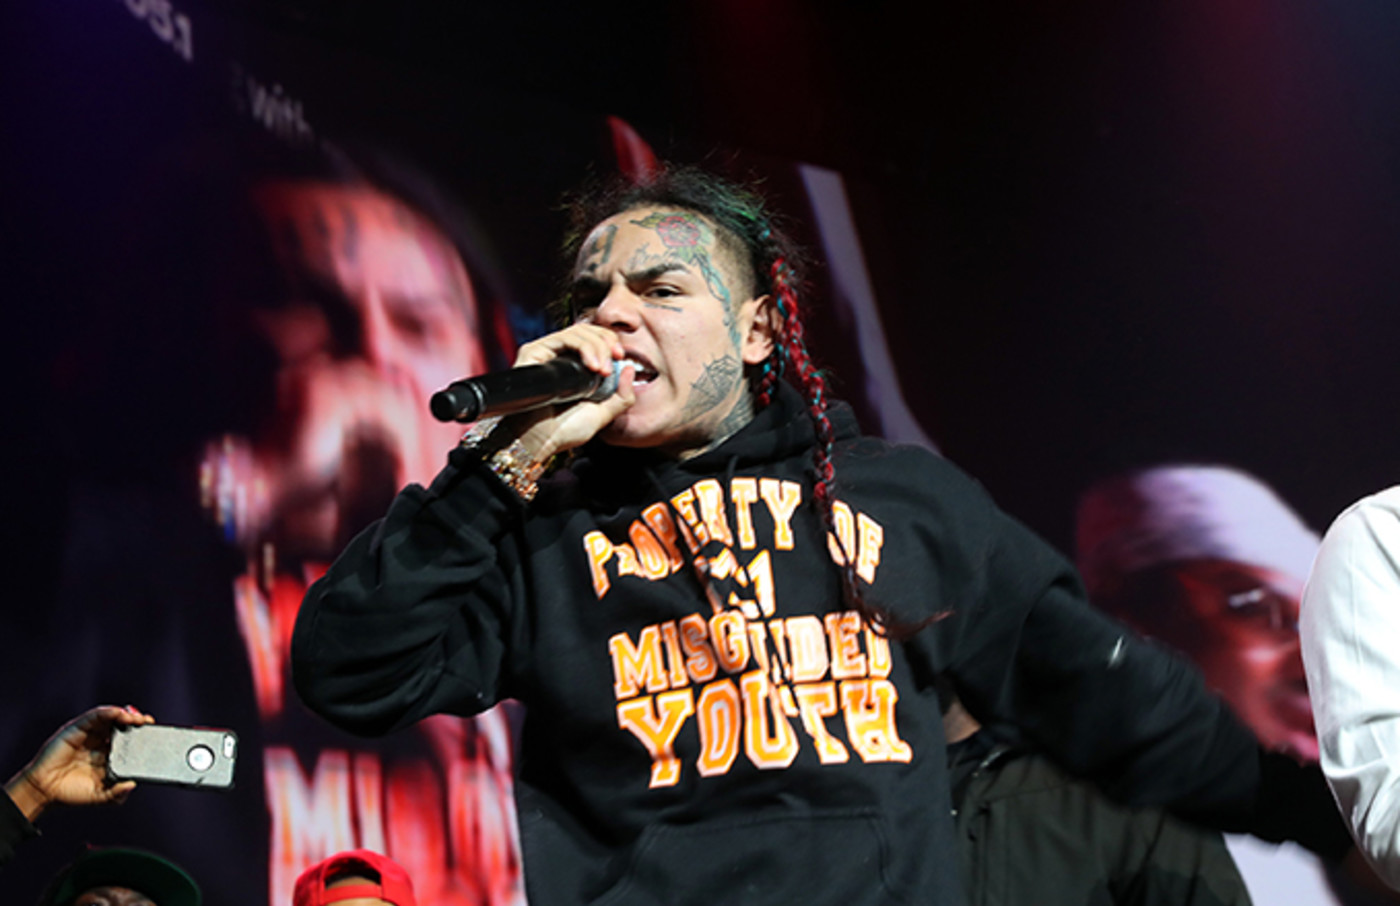 This is a photo of 6ix9ine.